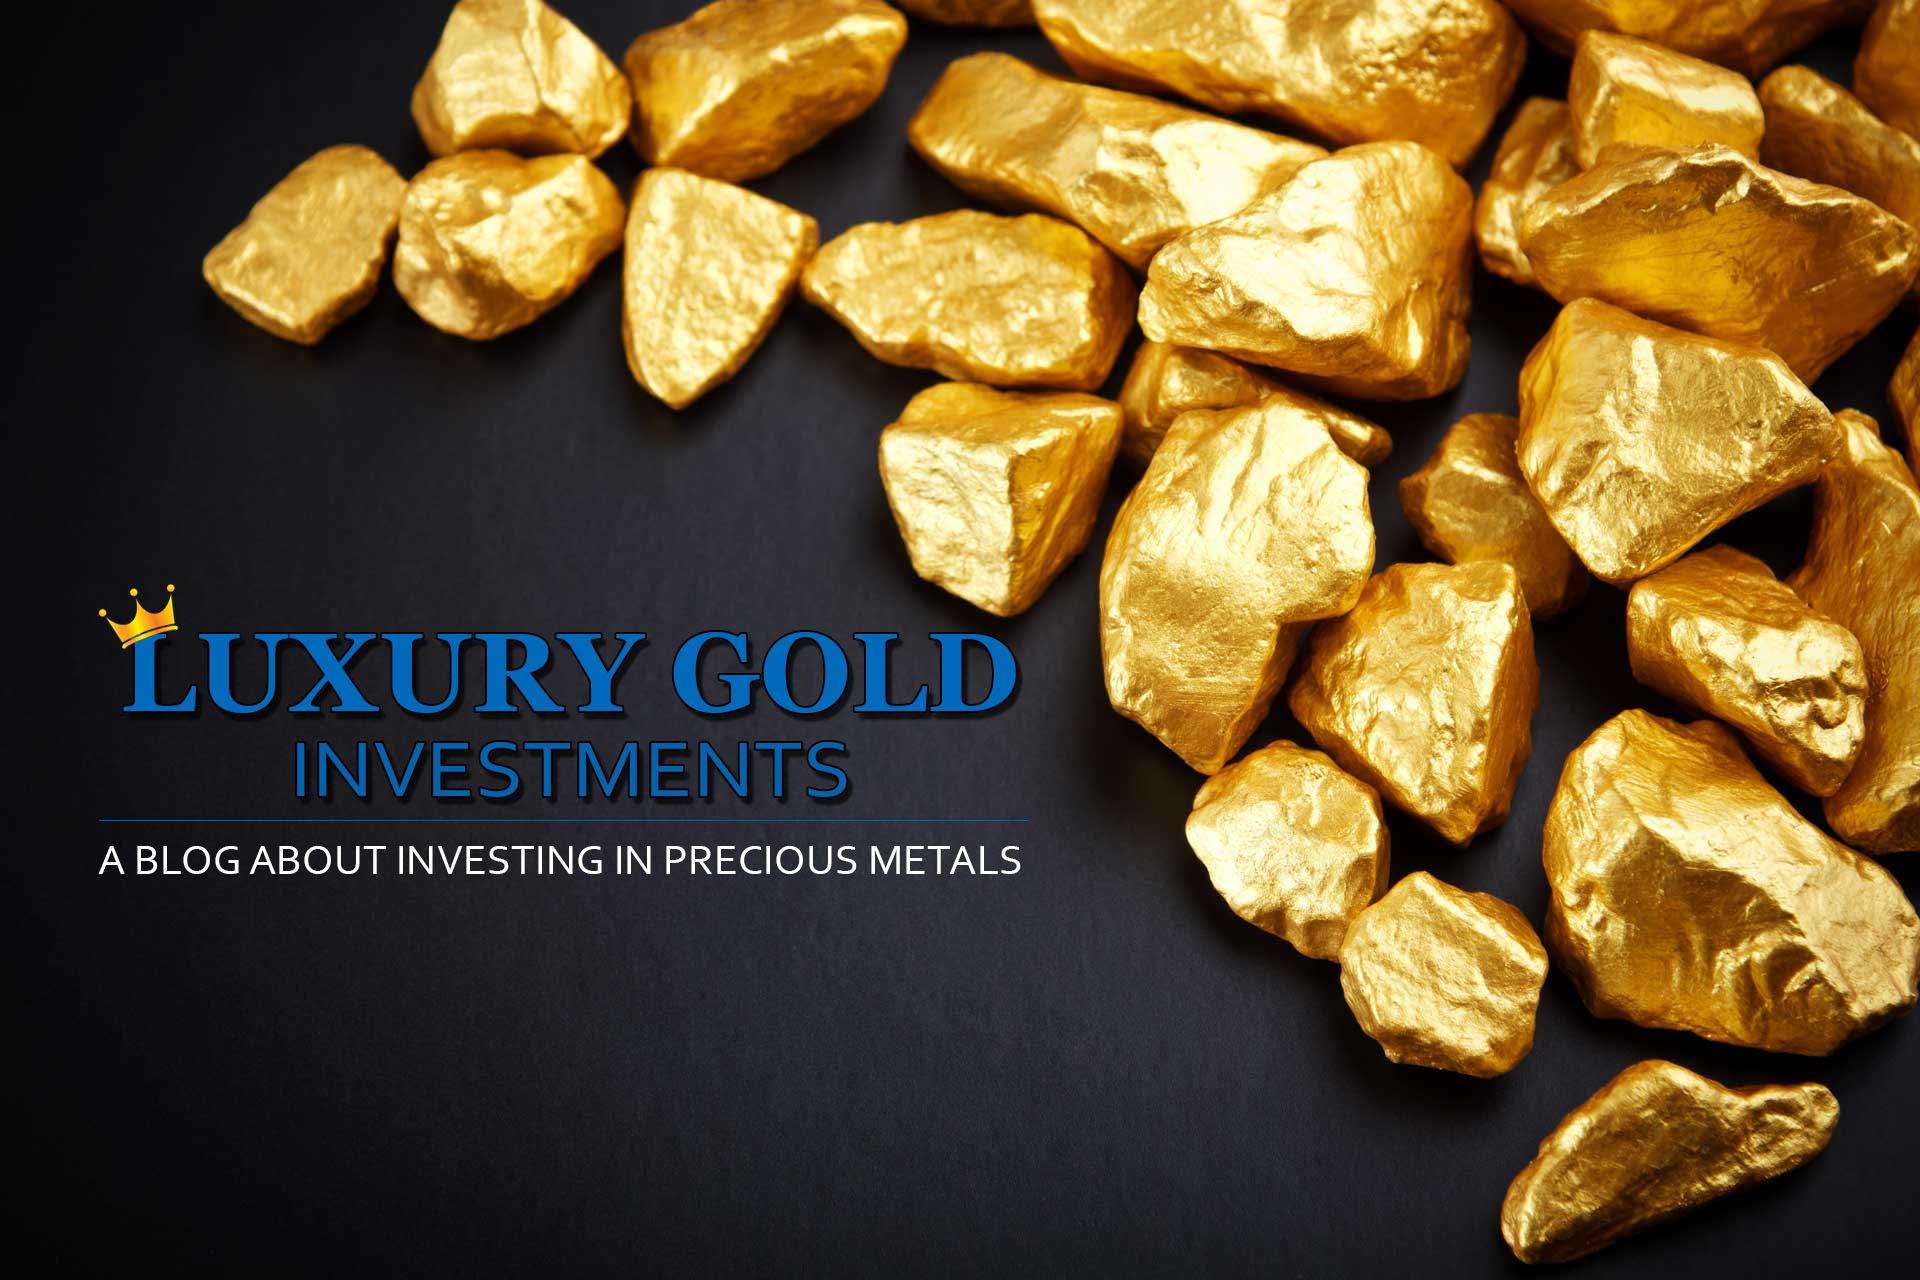 Luxury Gold Investments Logo